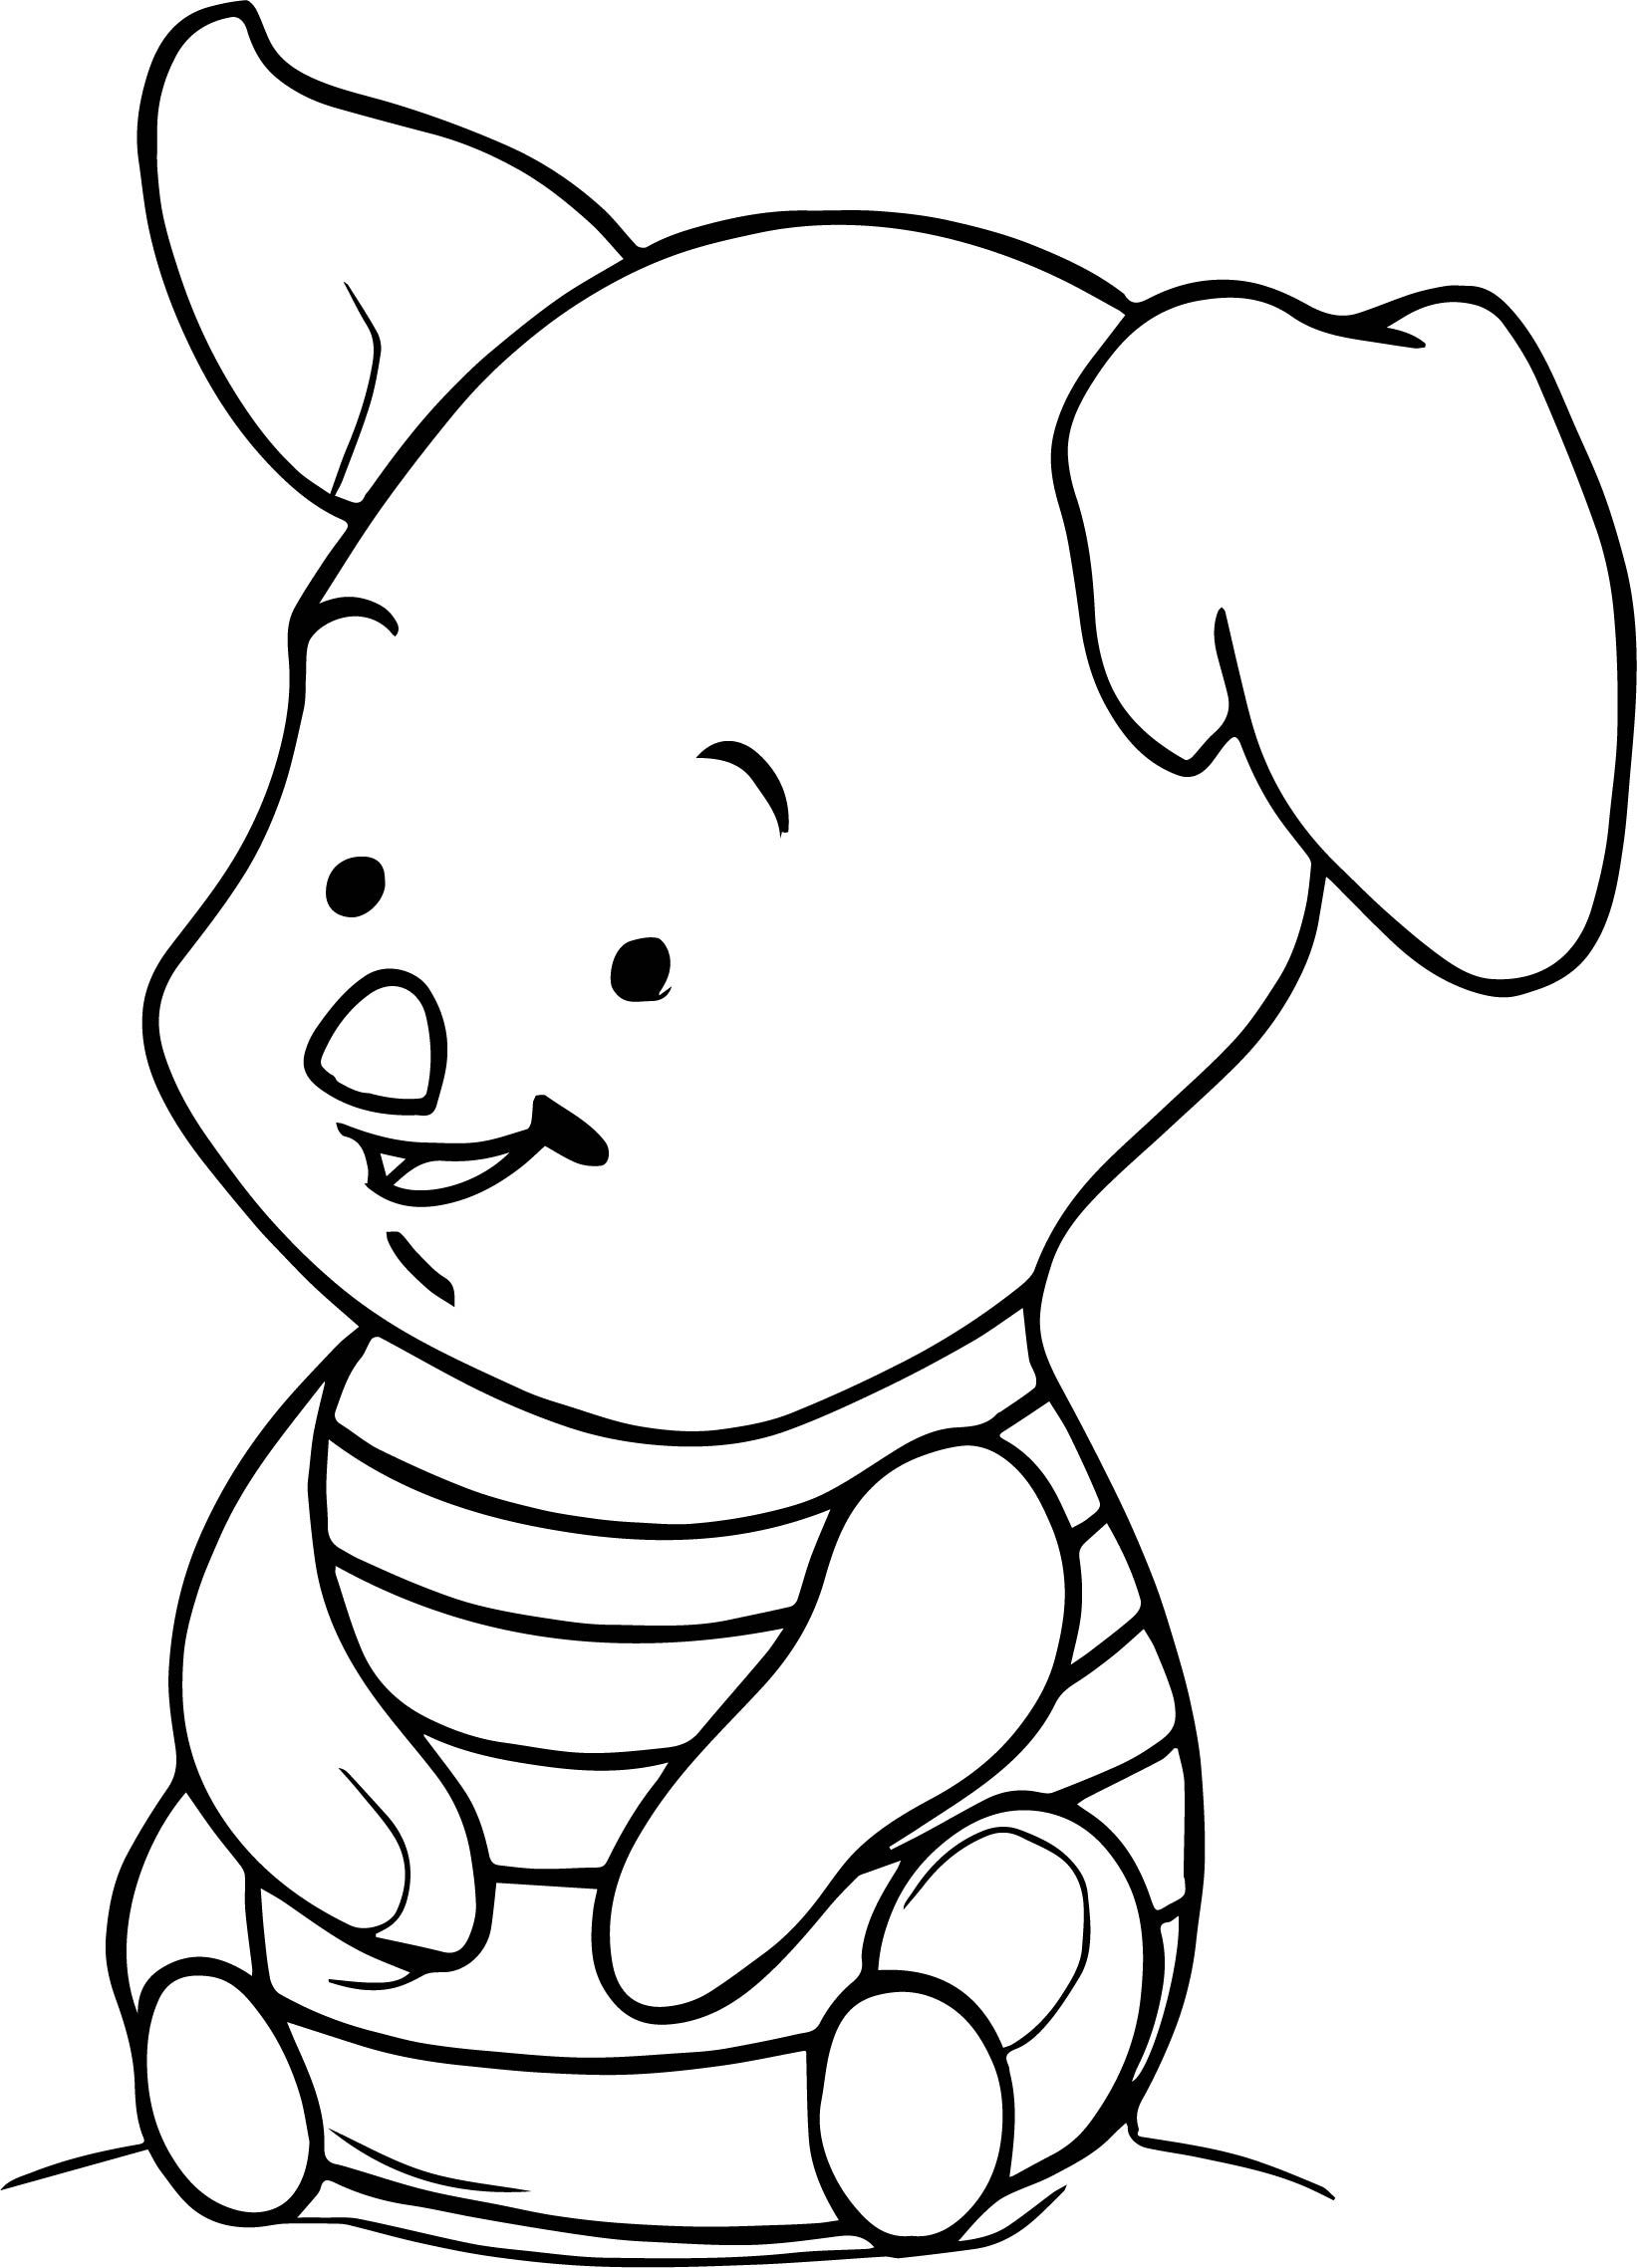 piglet coloring pages - photo#33